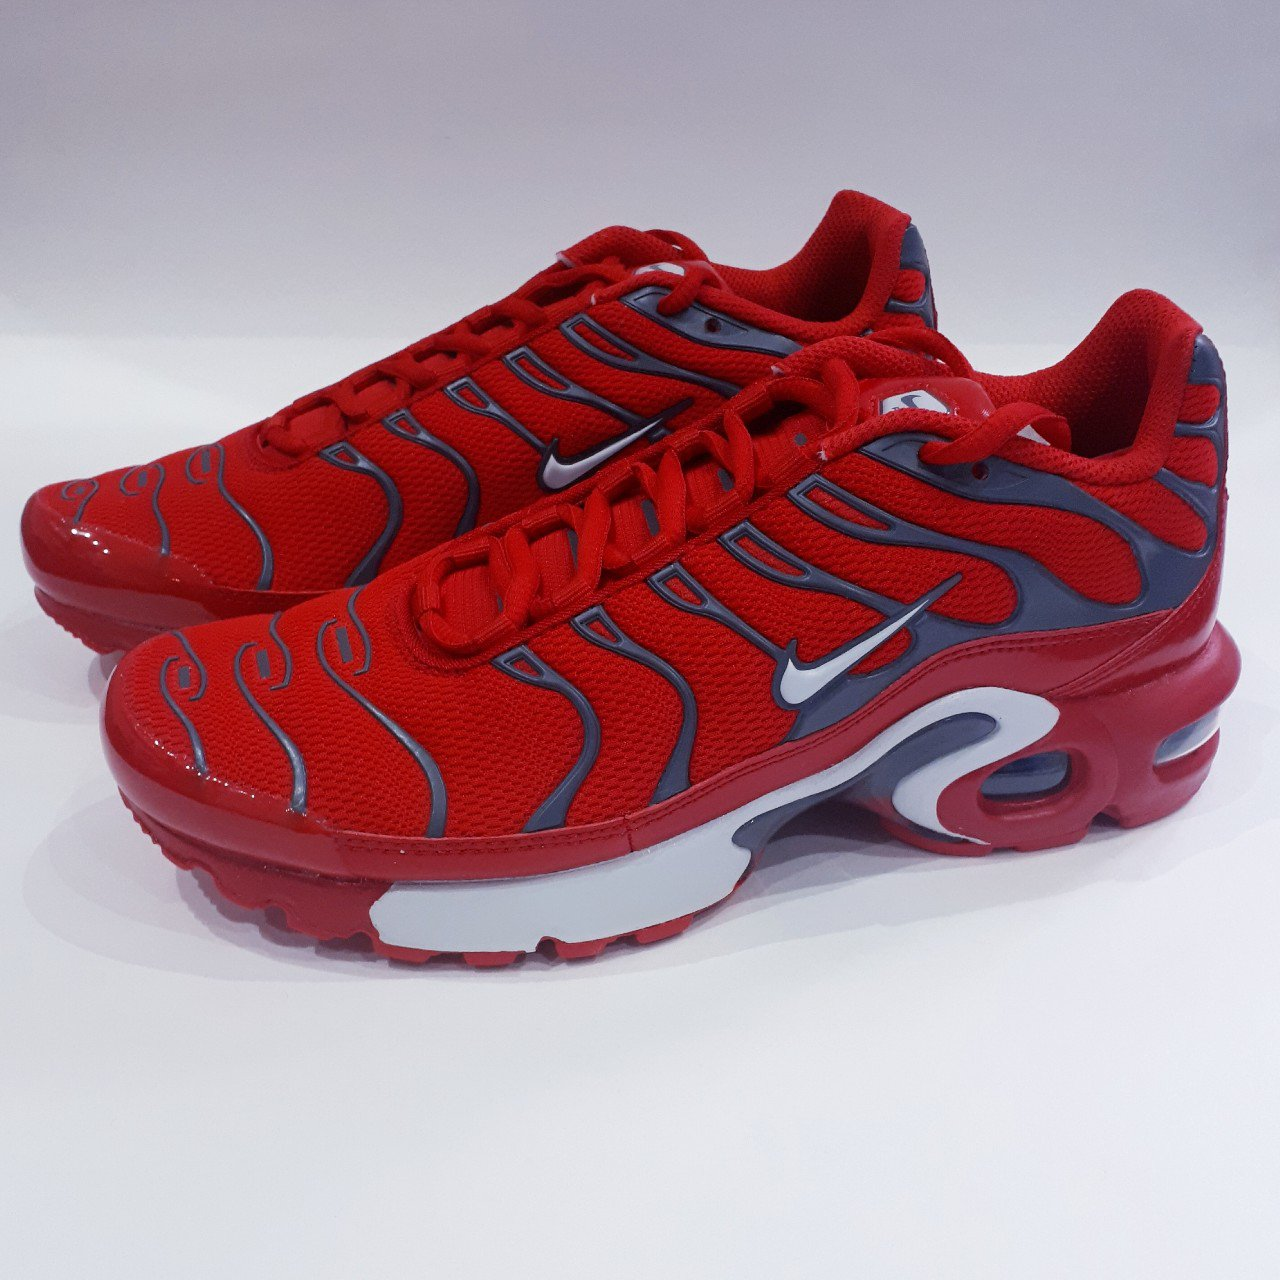 online store fe0ab 2381d  trillkingcole. last year. Huddersfield, GB. University Red Pure Platinum Nike  Air Max Plus TN (GS). Size 6y UK 5.5.